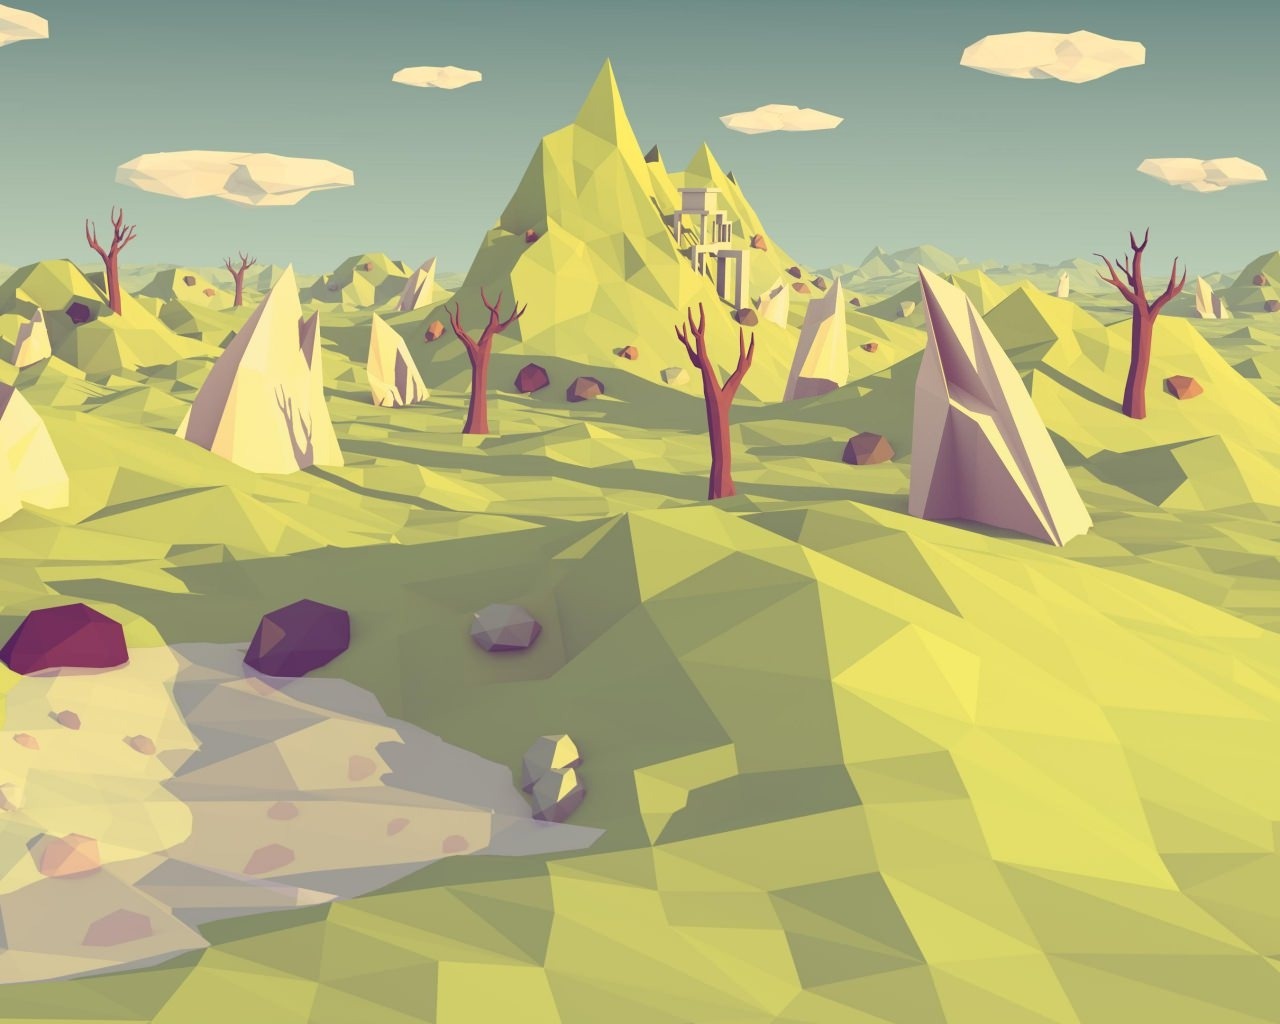 Low Poly Landscape Background